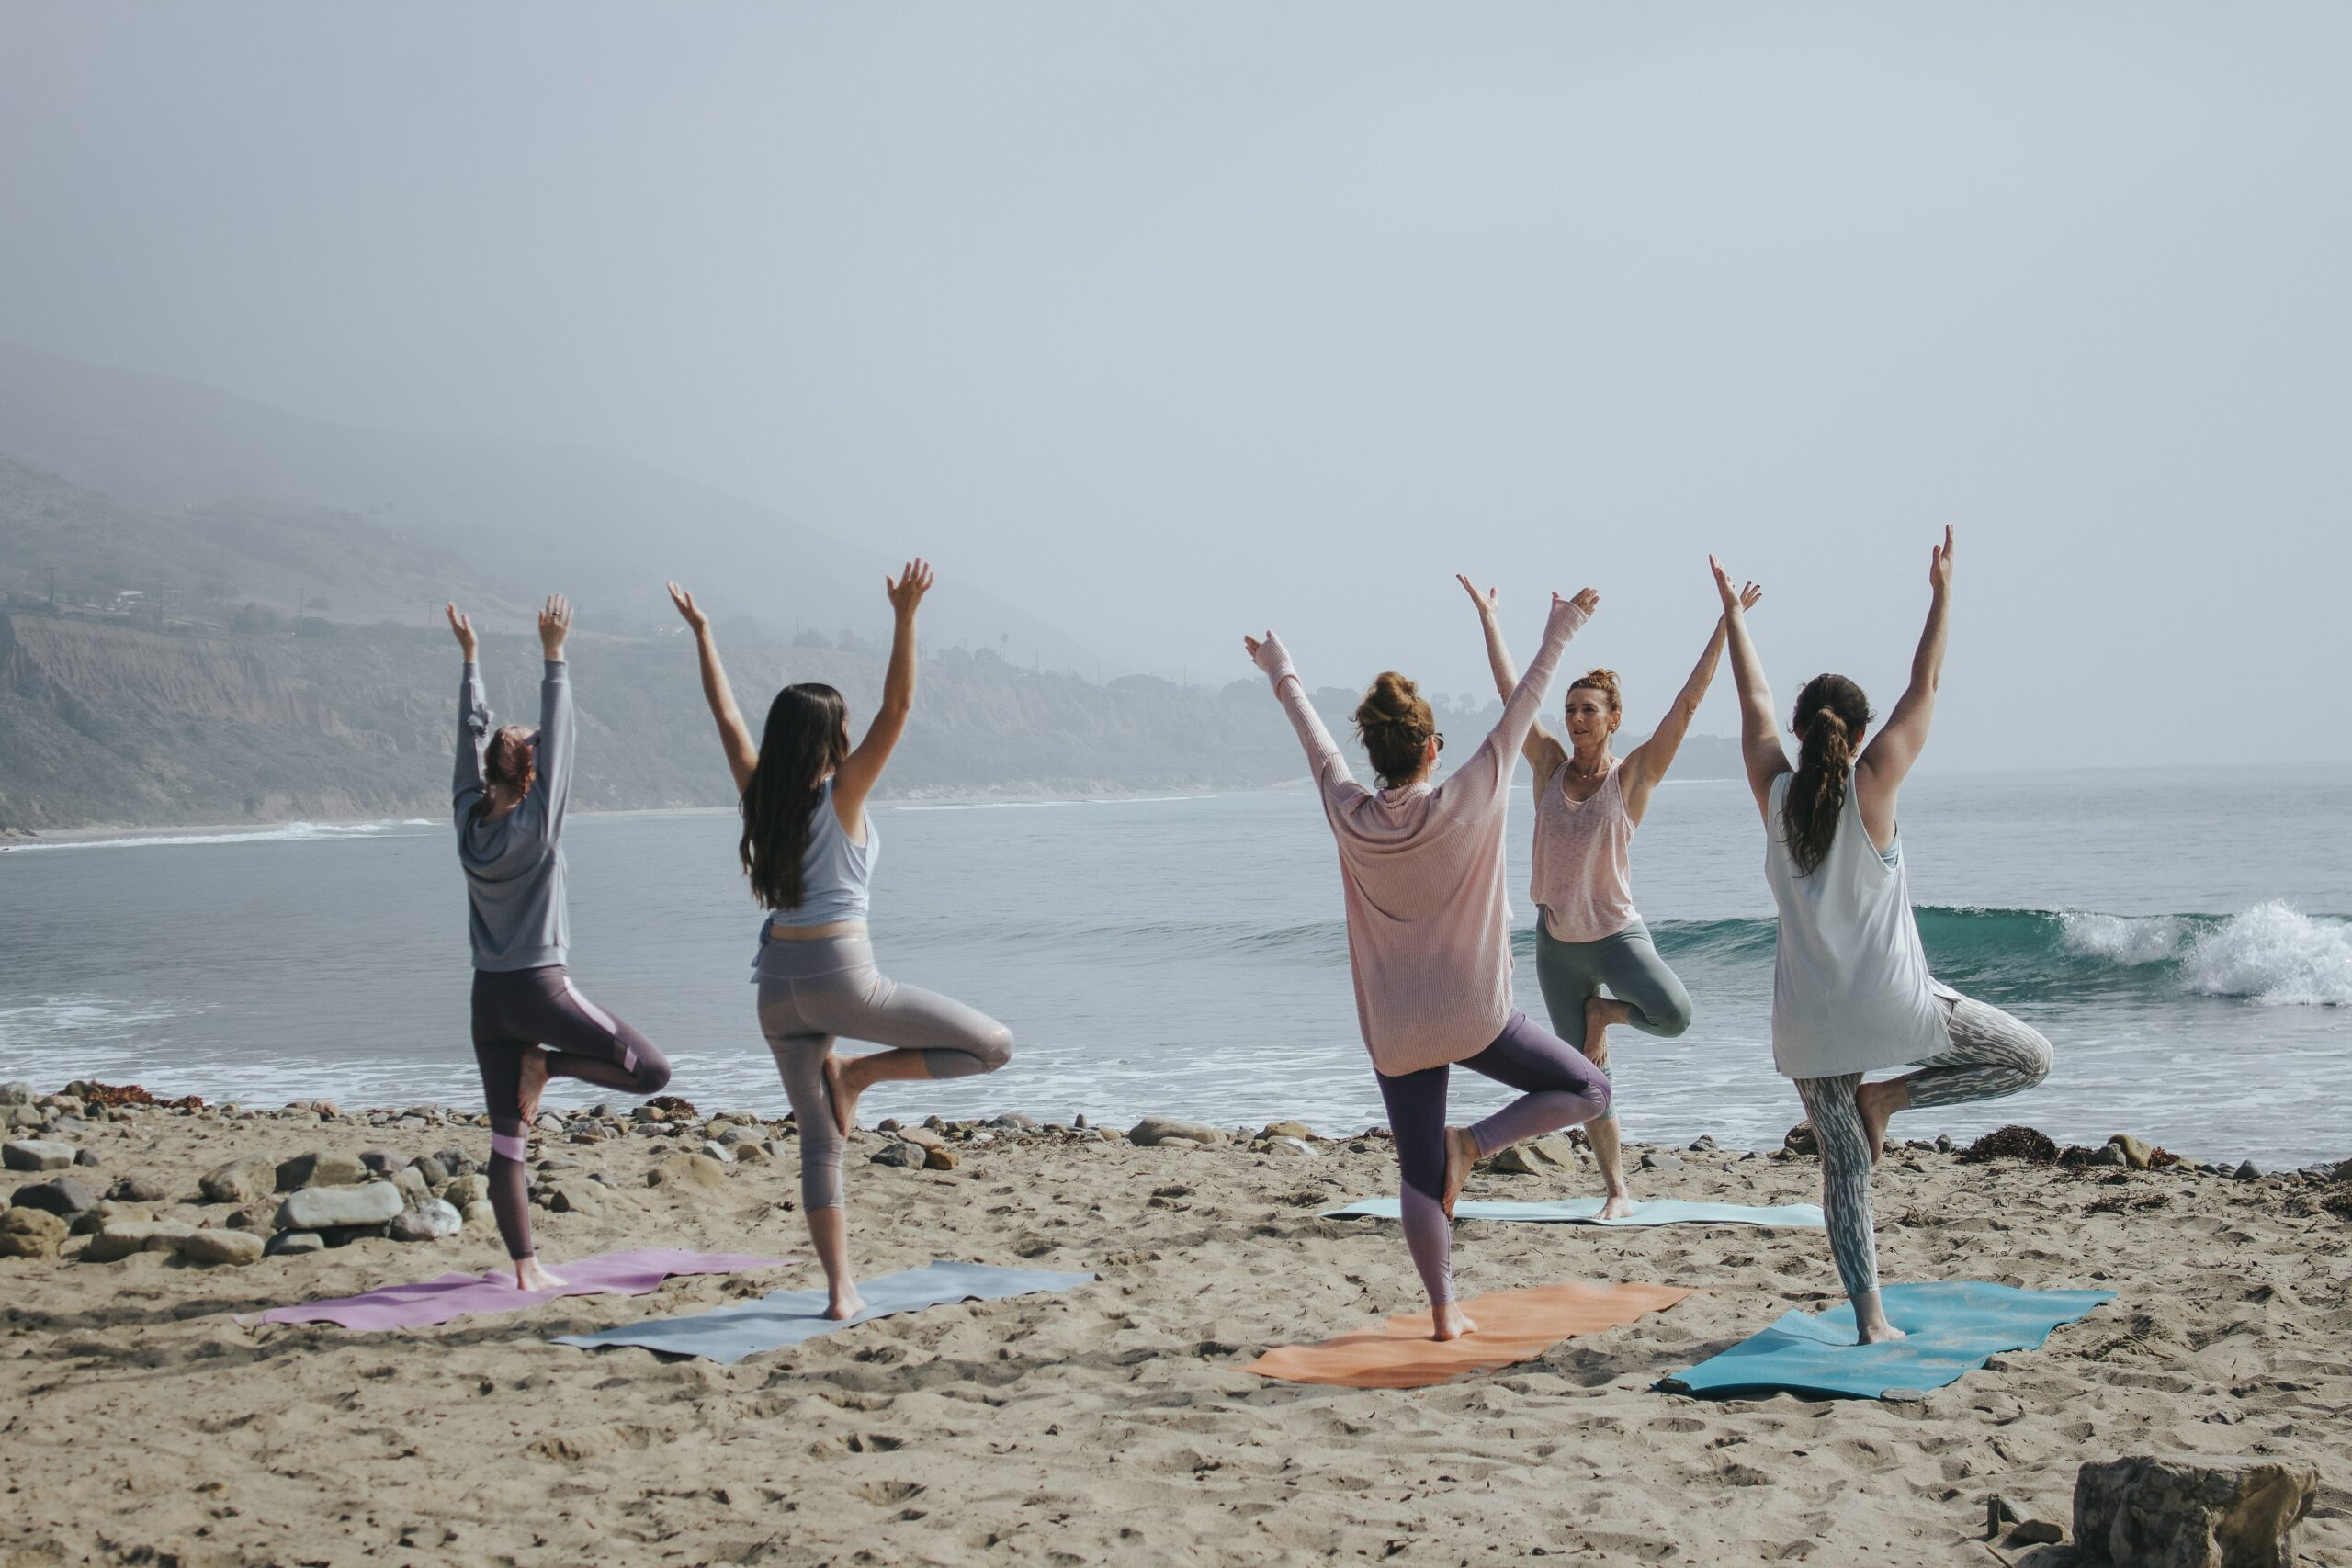 Five women standing on one leg each in yoga poses on a beach.